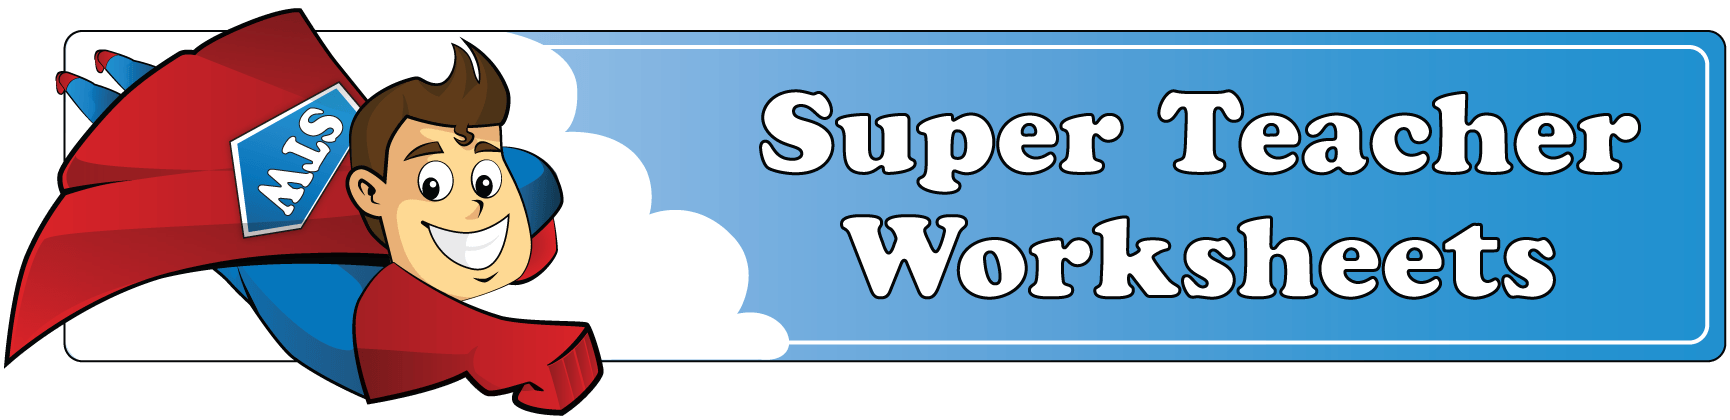 Printables Super Teacher Worksheets Username And Password log in to super teacher worksheets worksheets